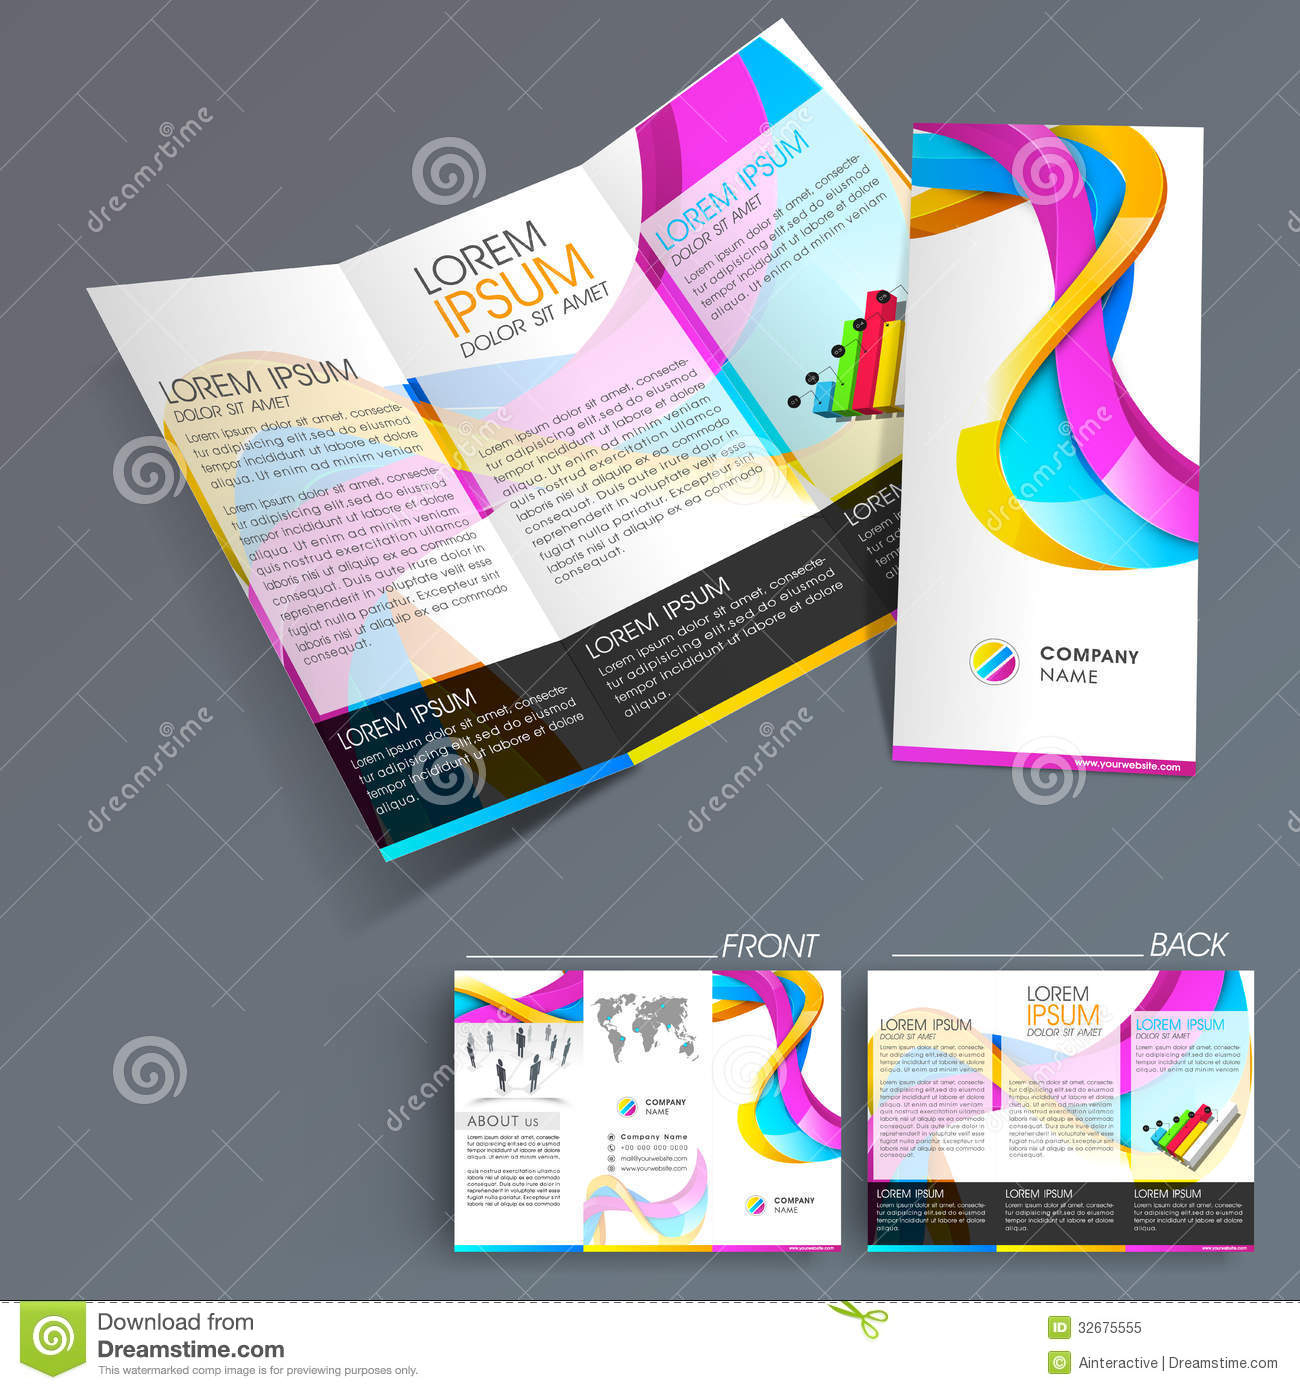 Free Printable Business Flyer Templates Bd On Business Firm Flyers - Free Printable Business Flyers